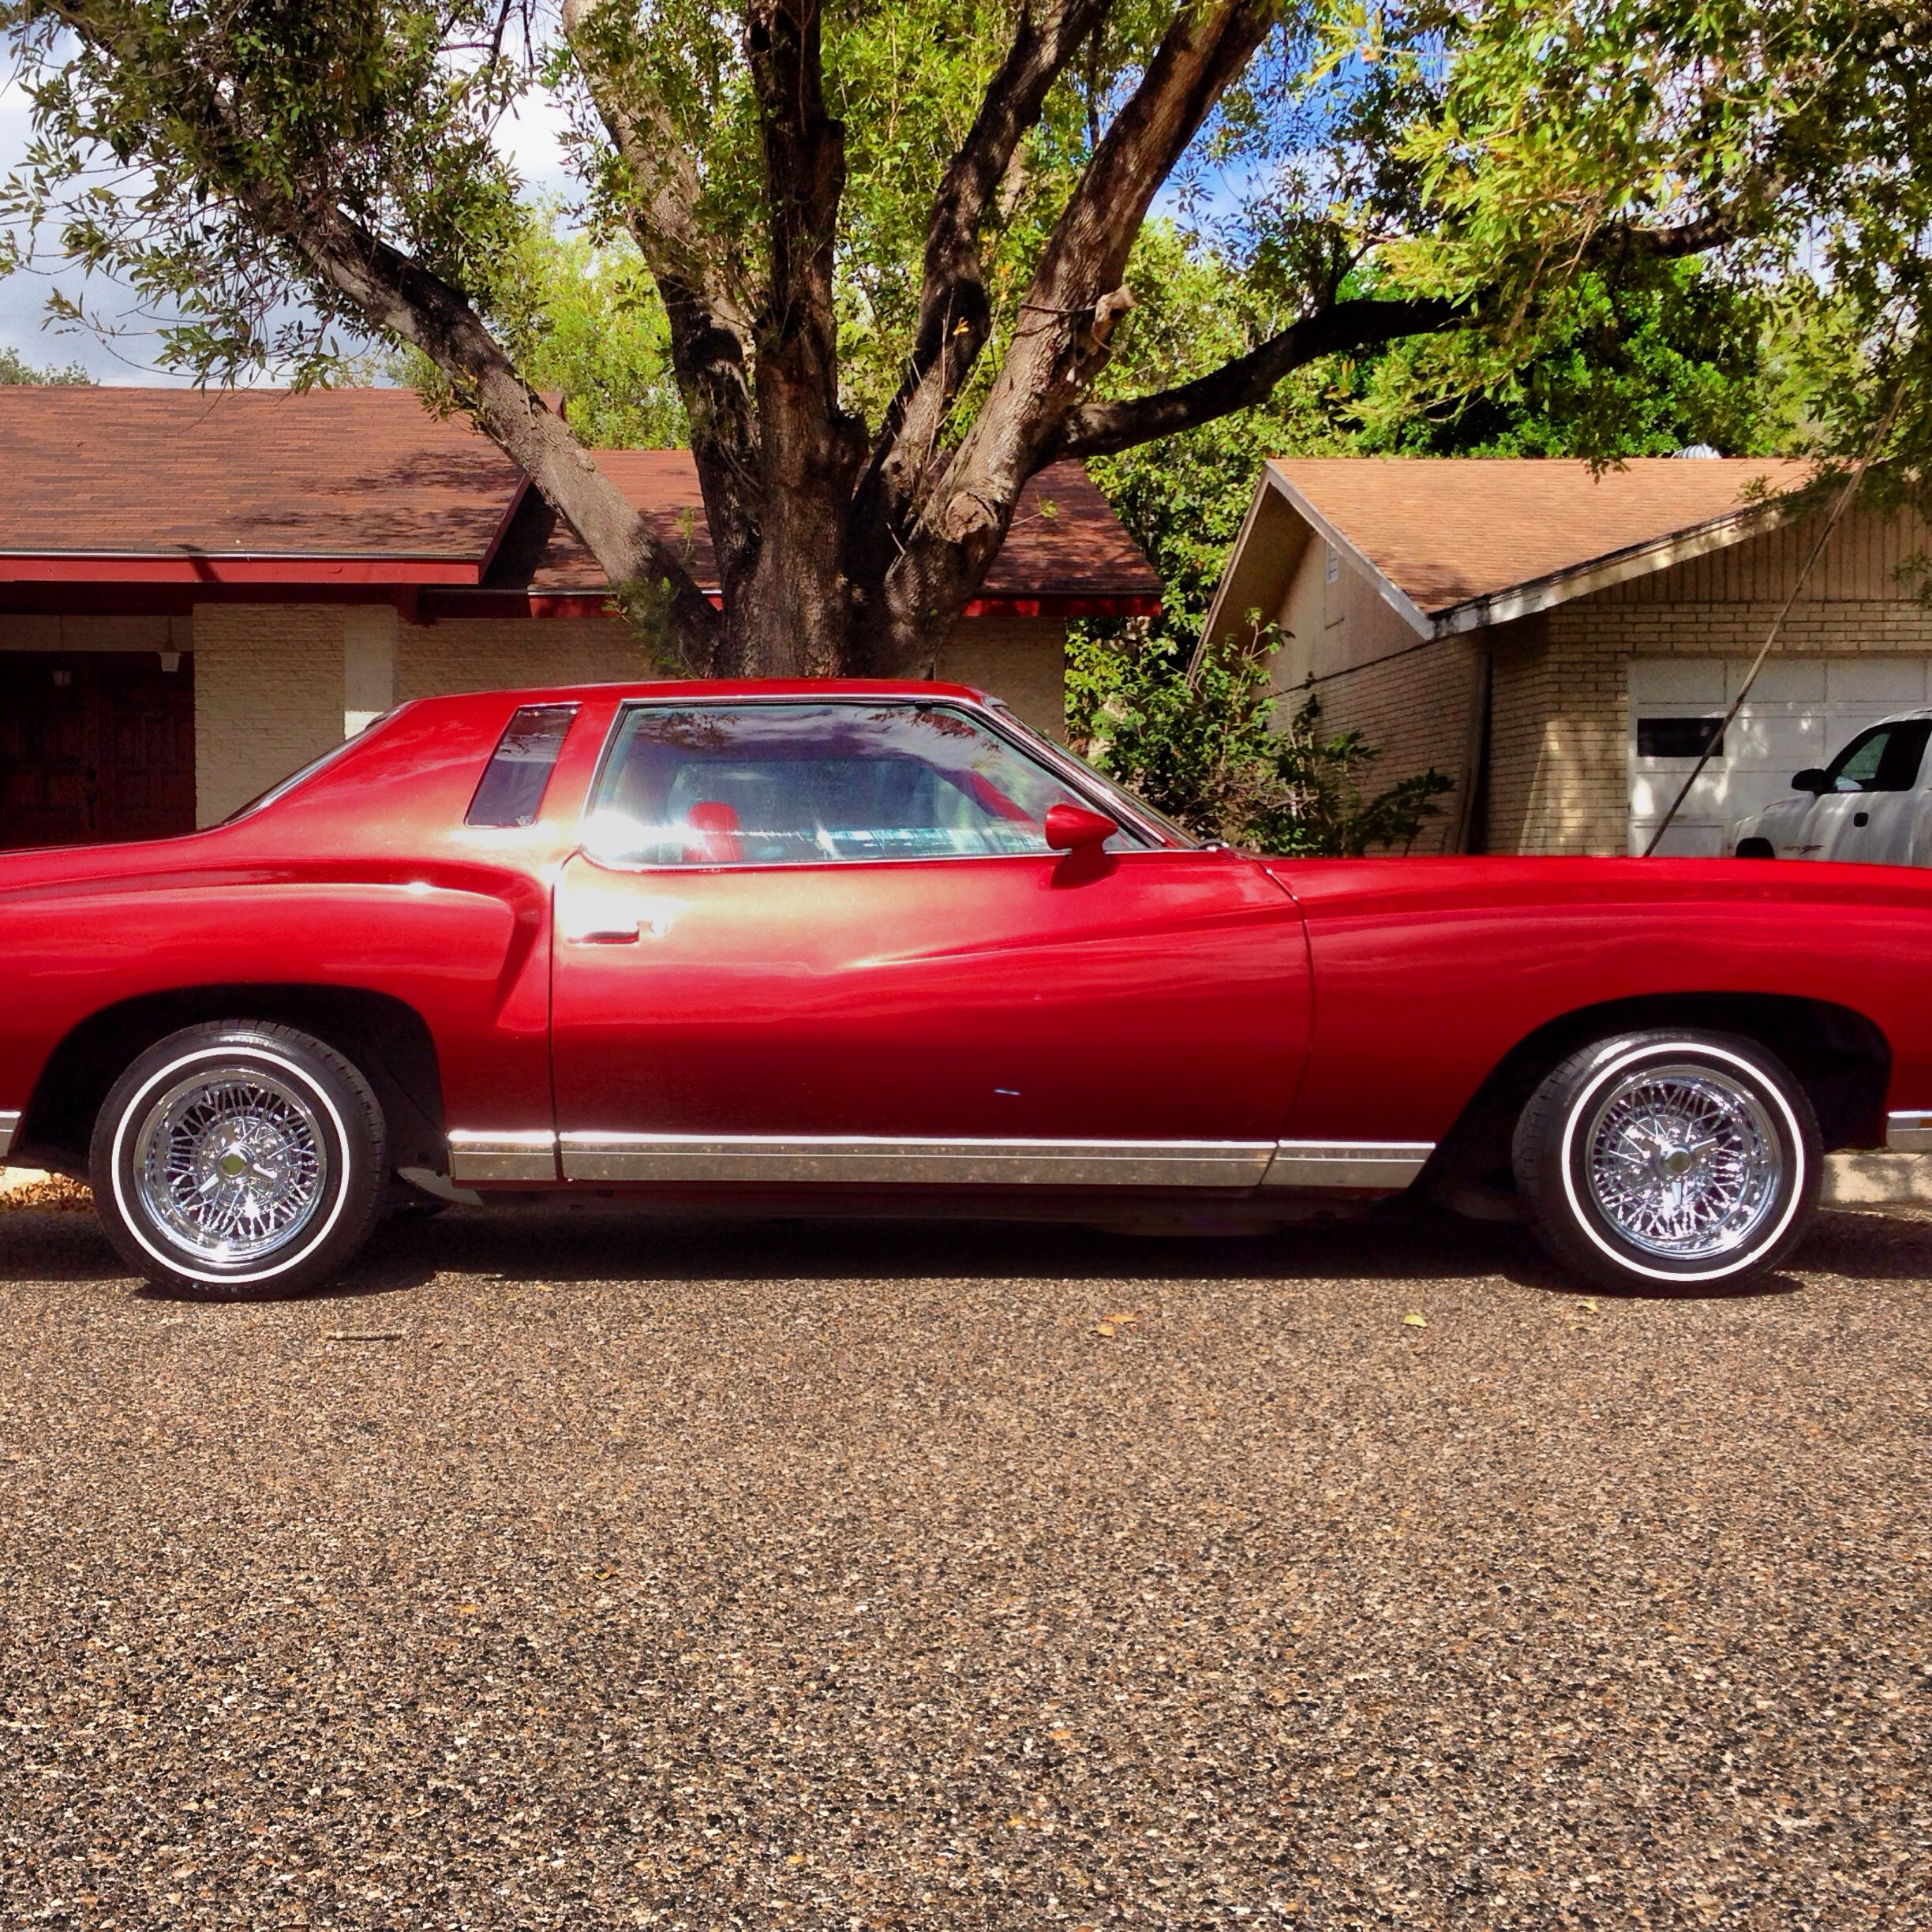 Buick Regal Lowrider For Sale: Lowriders For Sale Pinterestcom